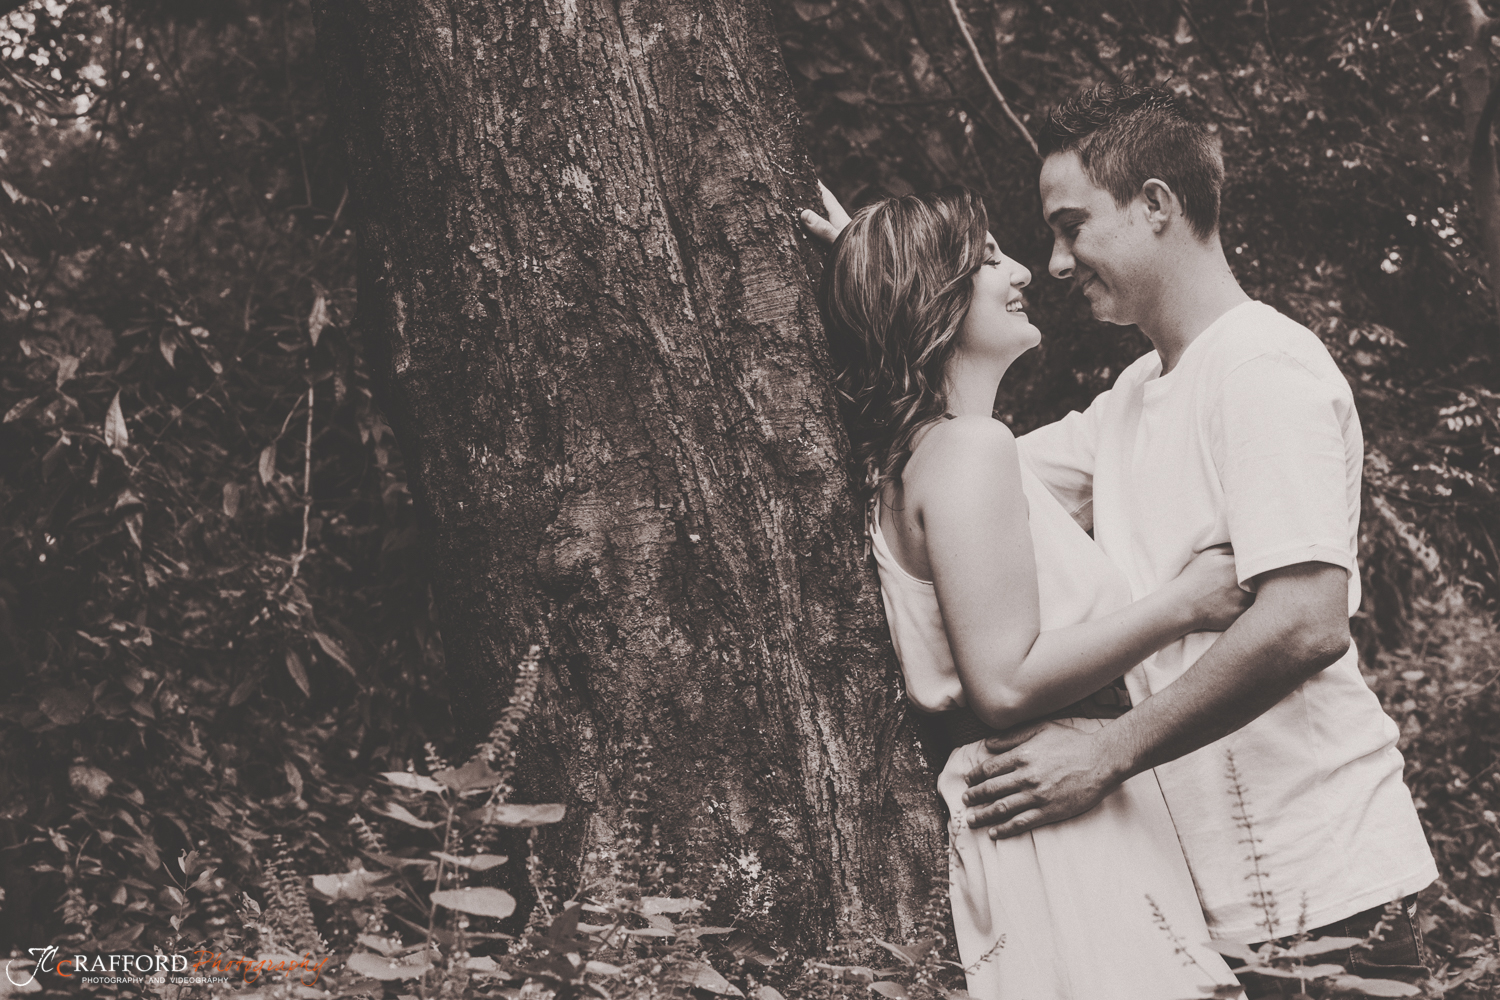 JC Crafford Pretoria pre wedding photo shoot